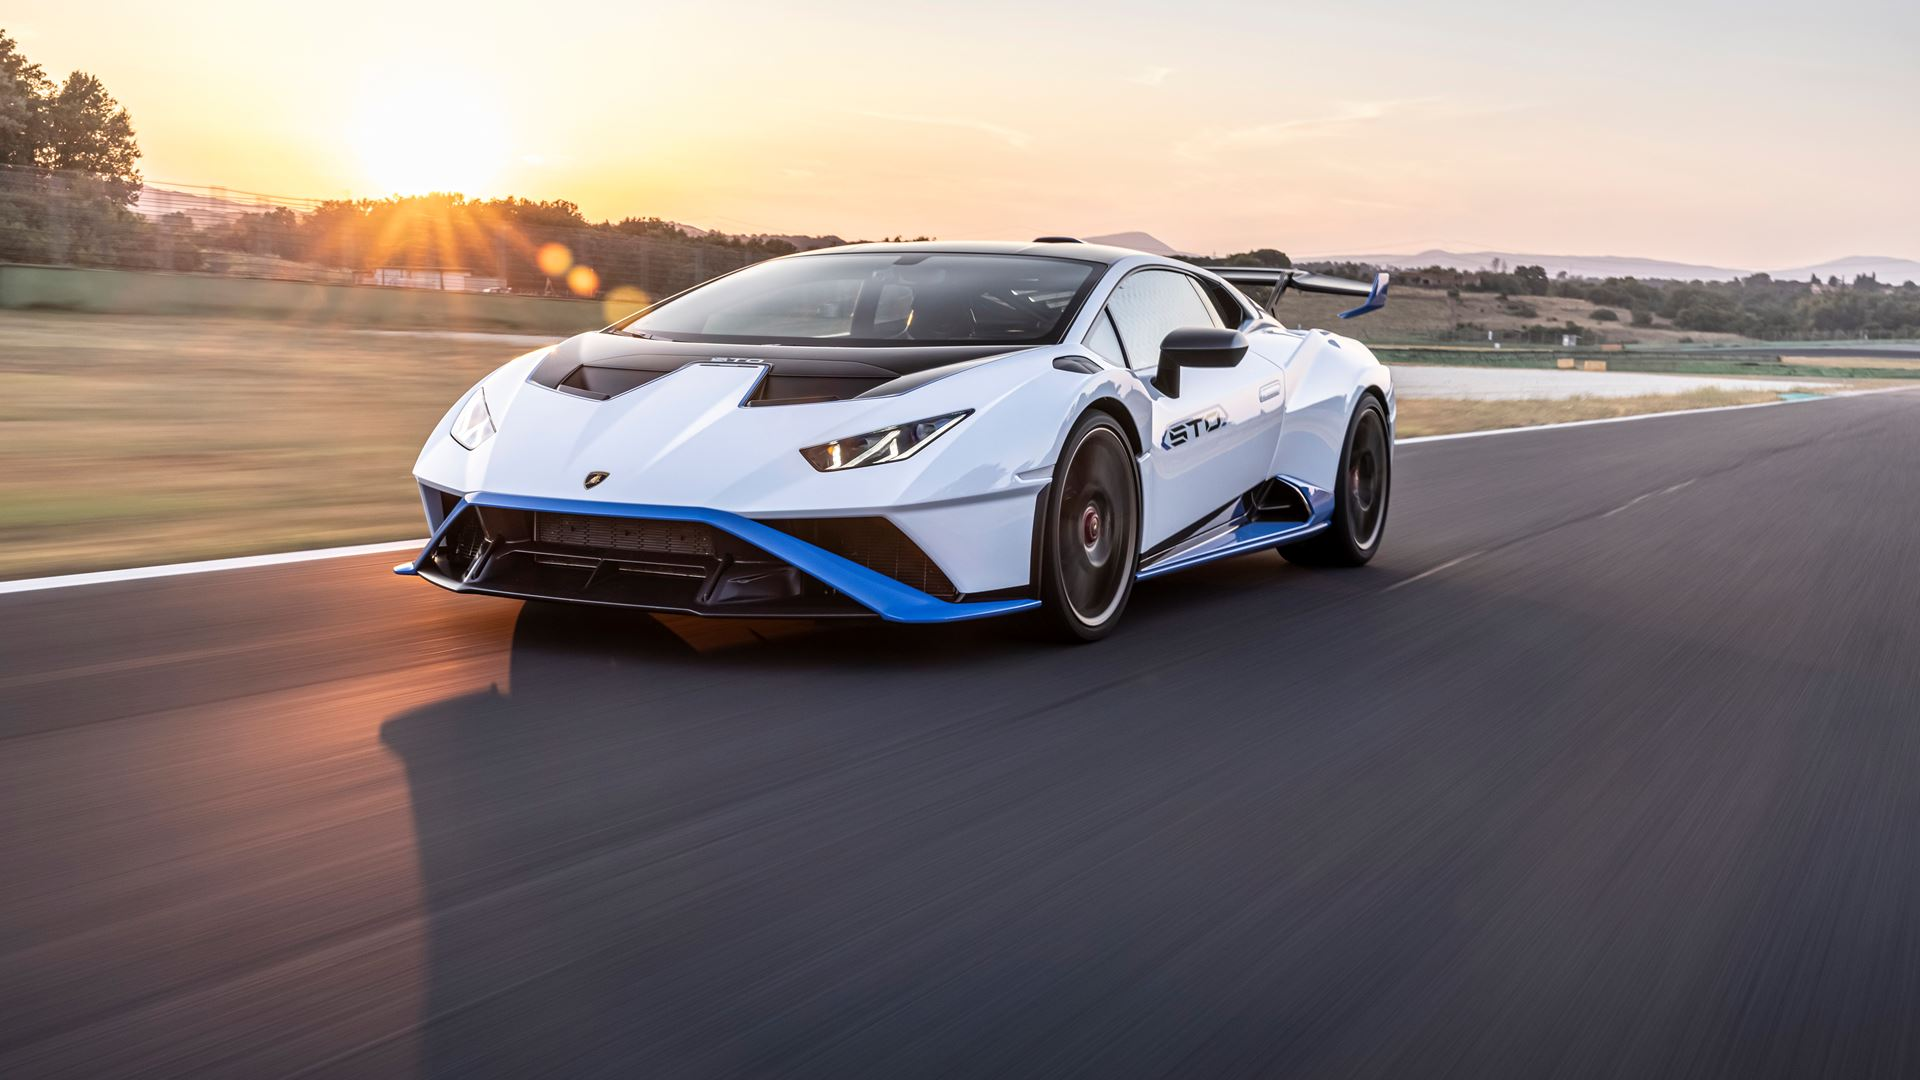 Lamborghini Huracán STO finally unleashed First test-drives in Rome and at the Autodromo Piero Taruffi in Vallelunga - Image 7